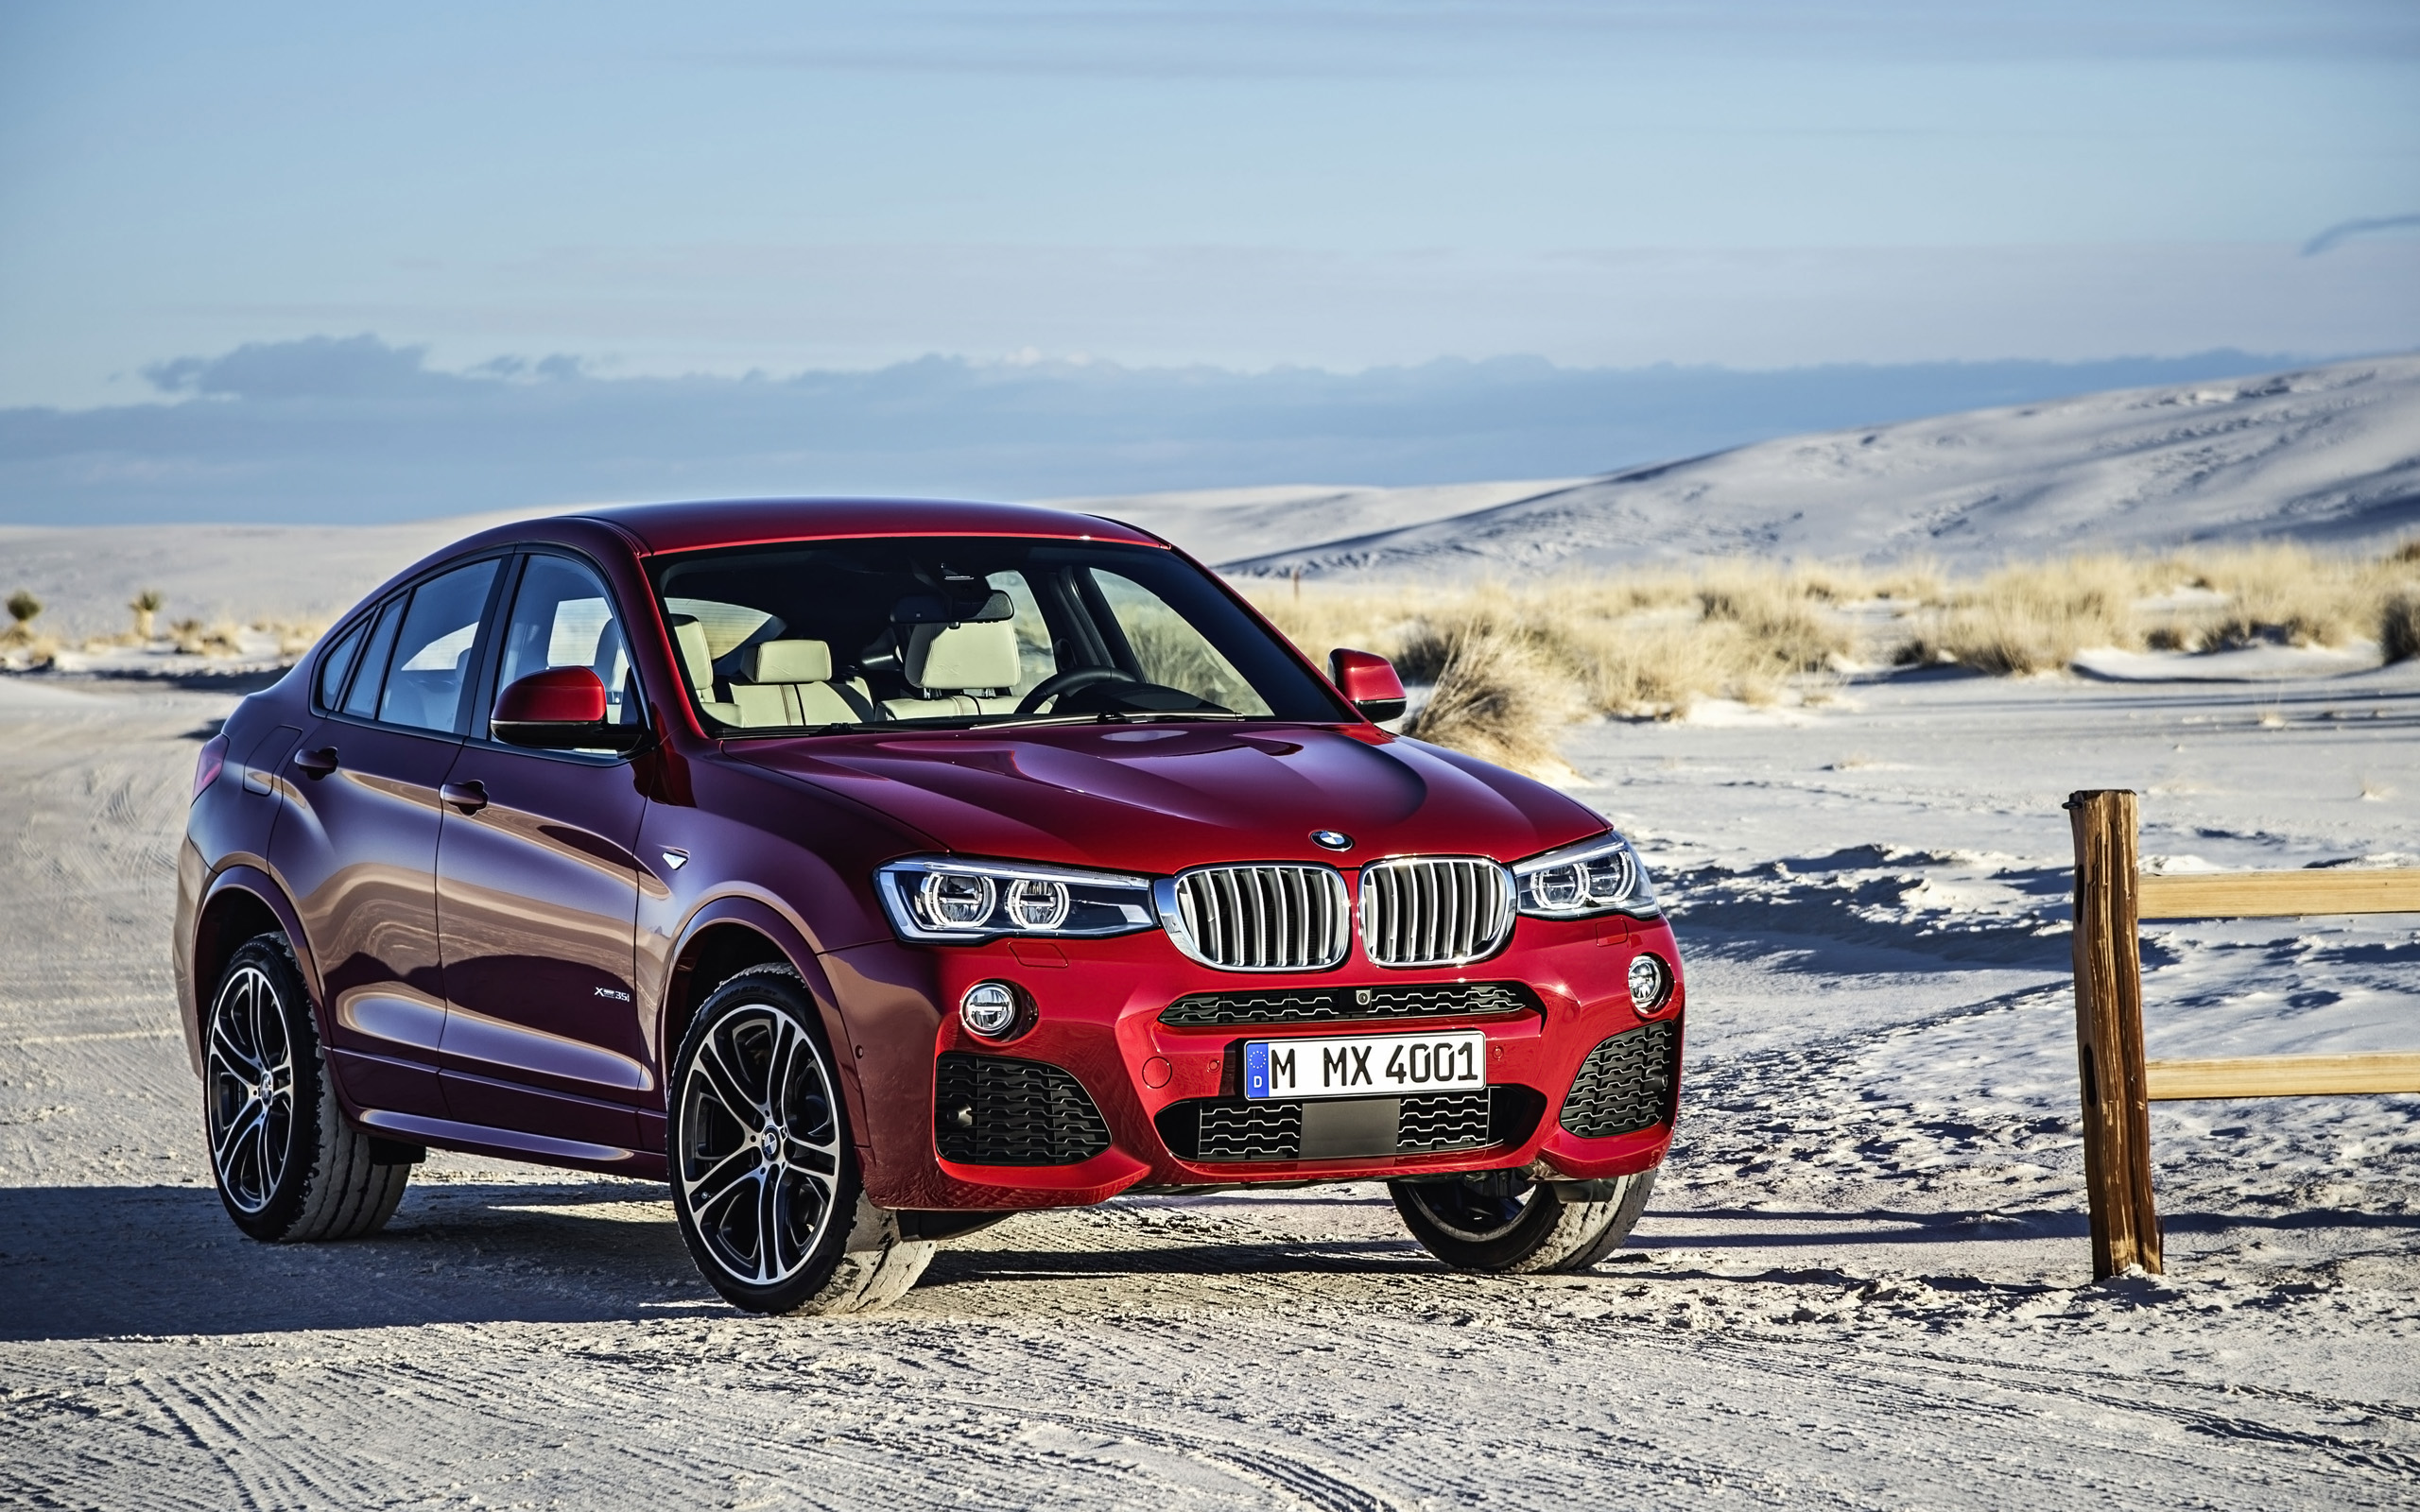 2560x1600 - BMW X4 Wallpapers 18